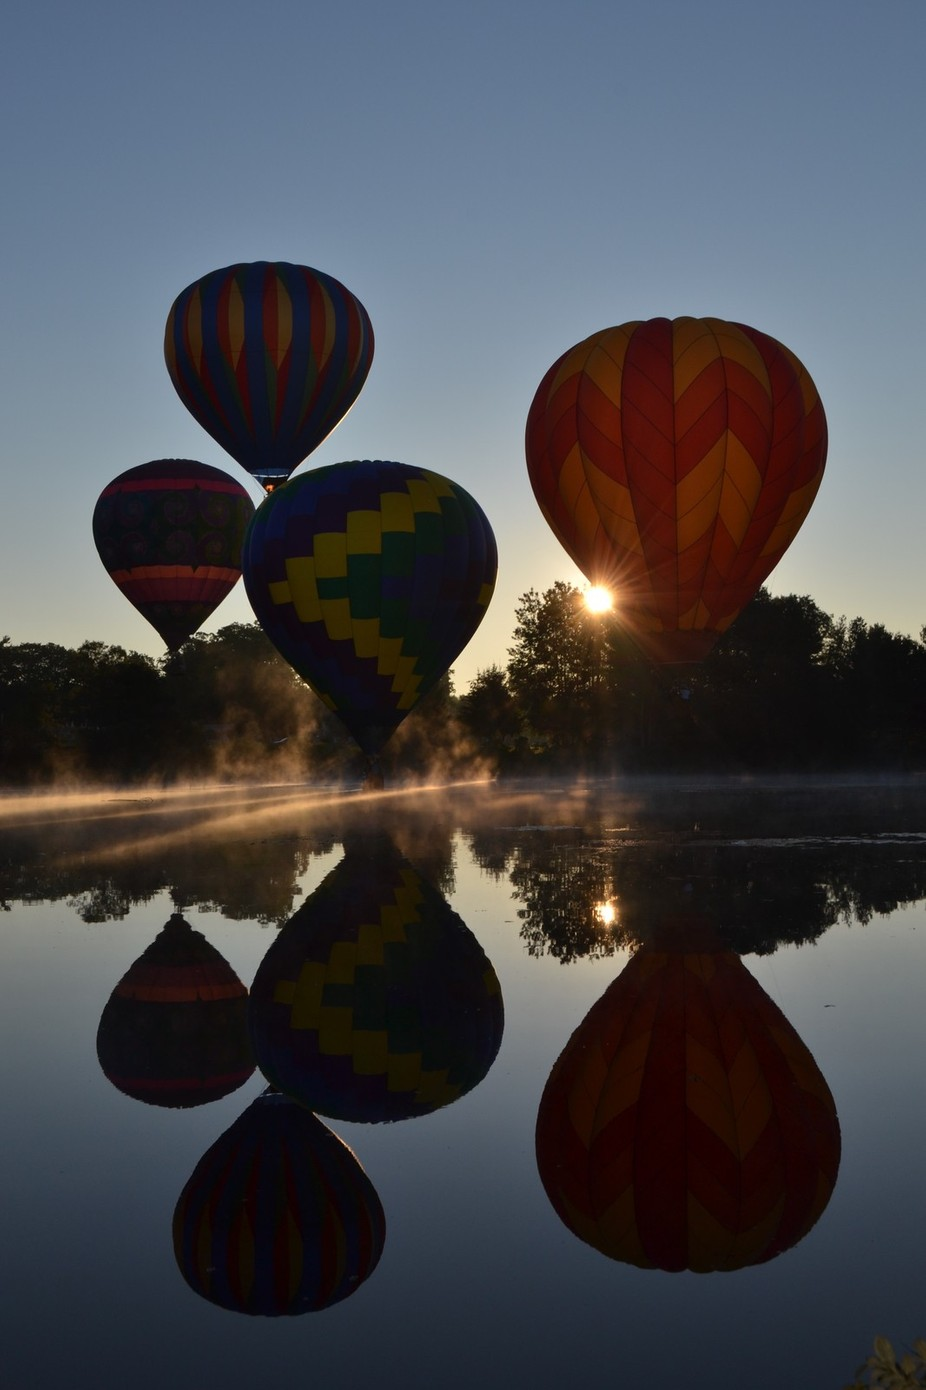 balloons at sunrise by amiejames - Show Balloons Photo Contest